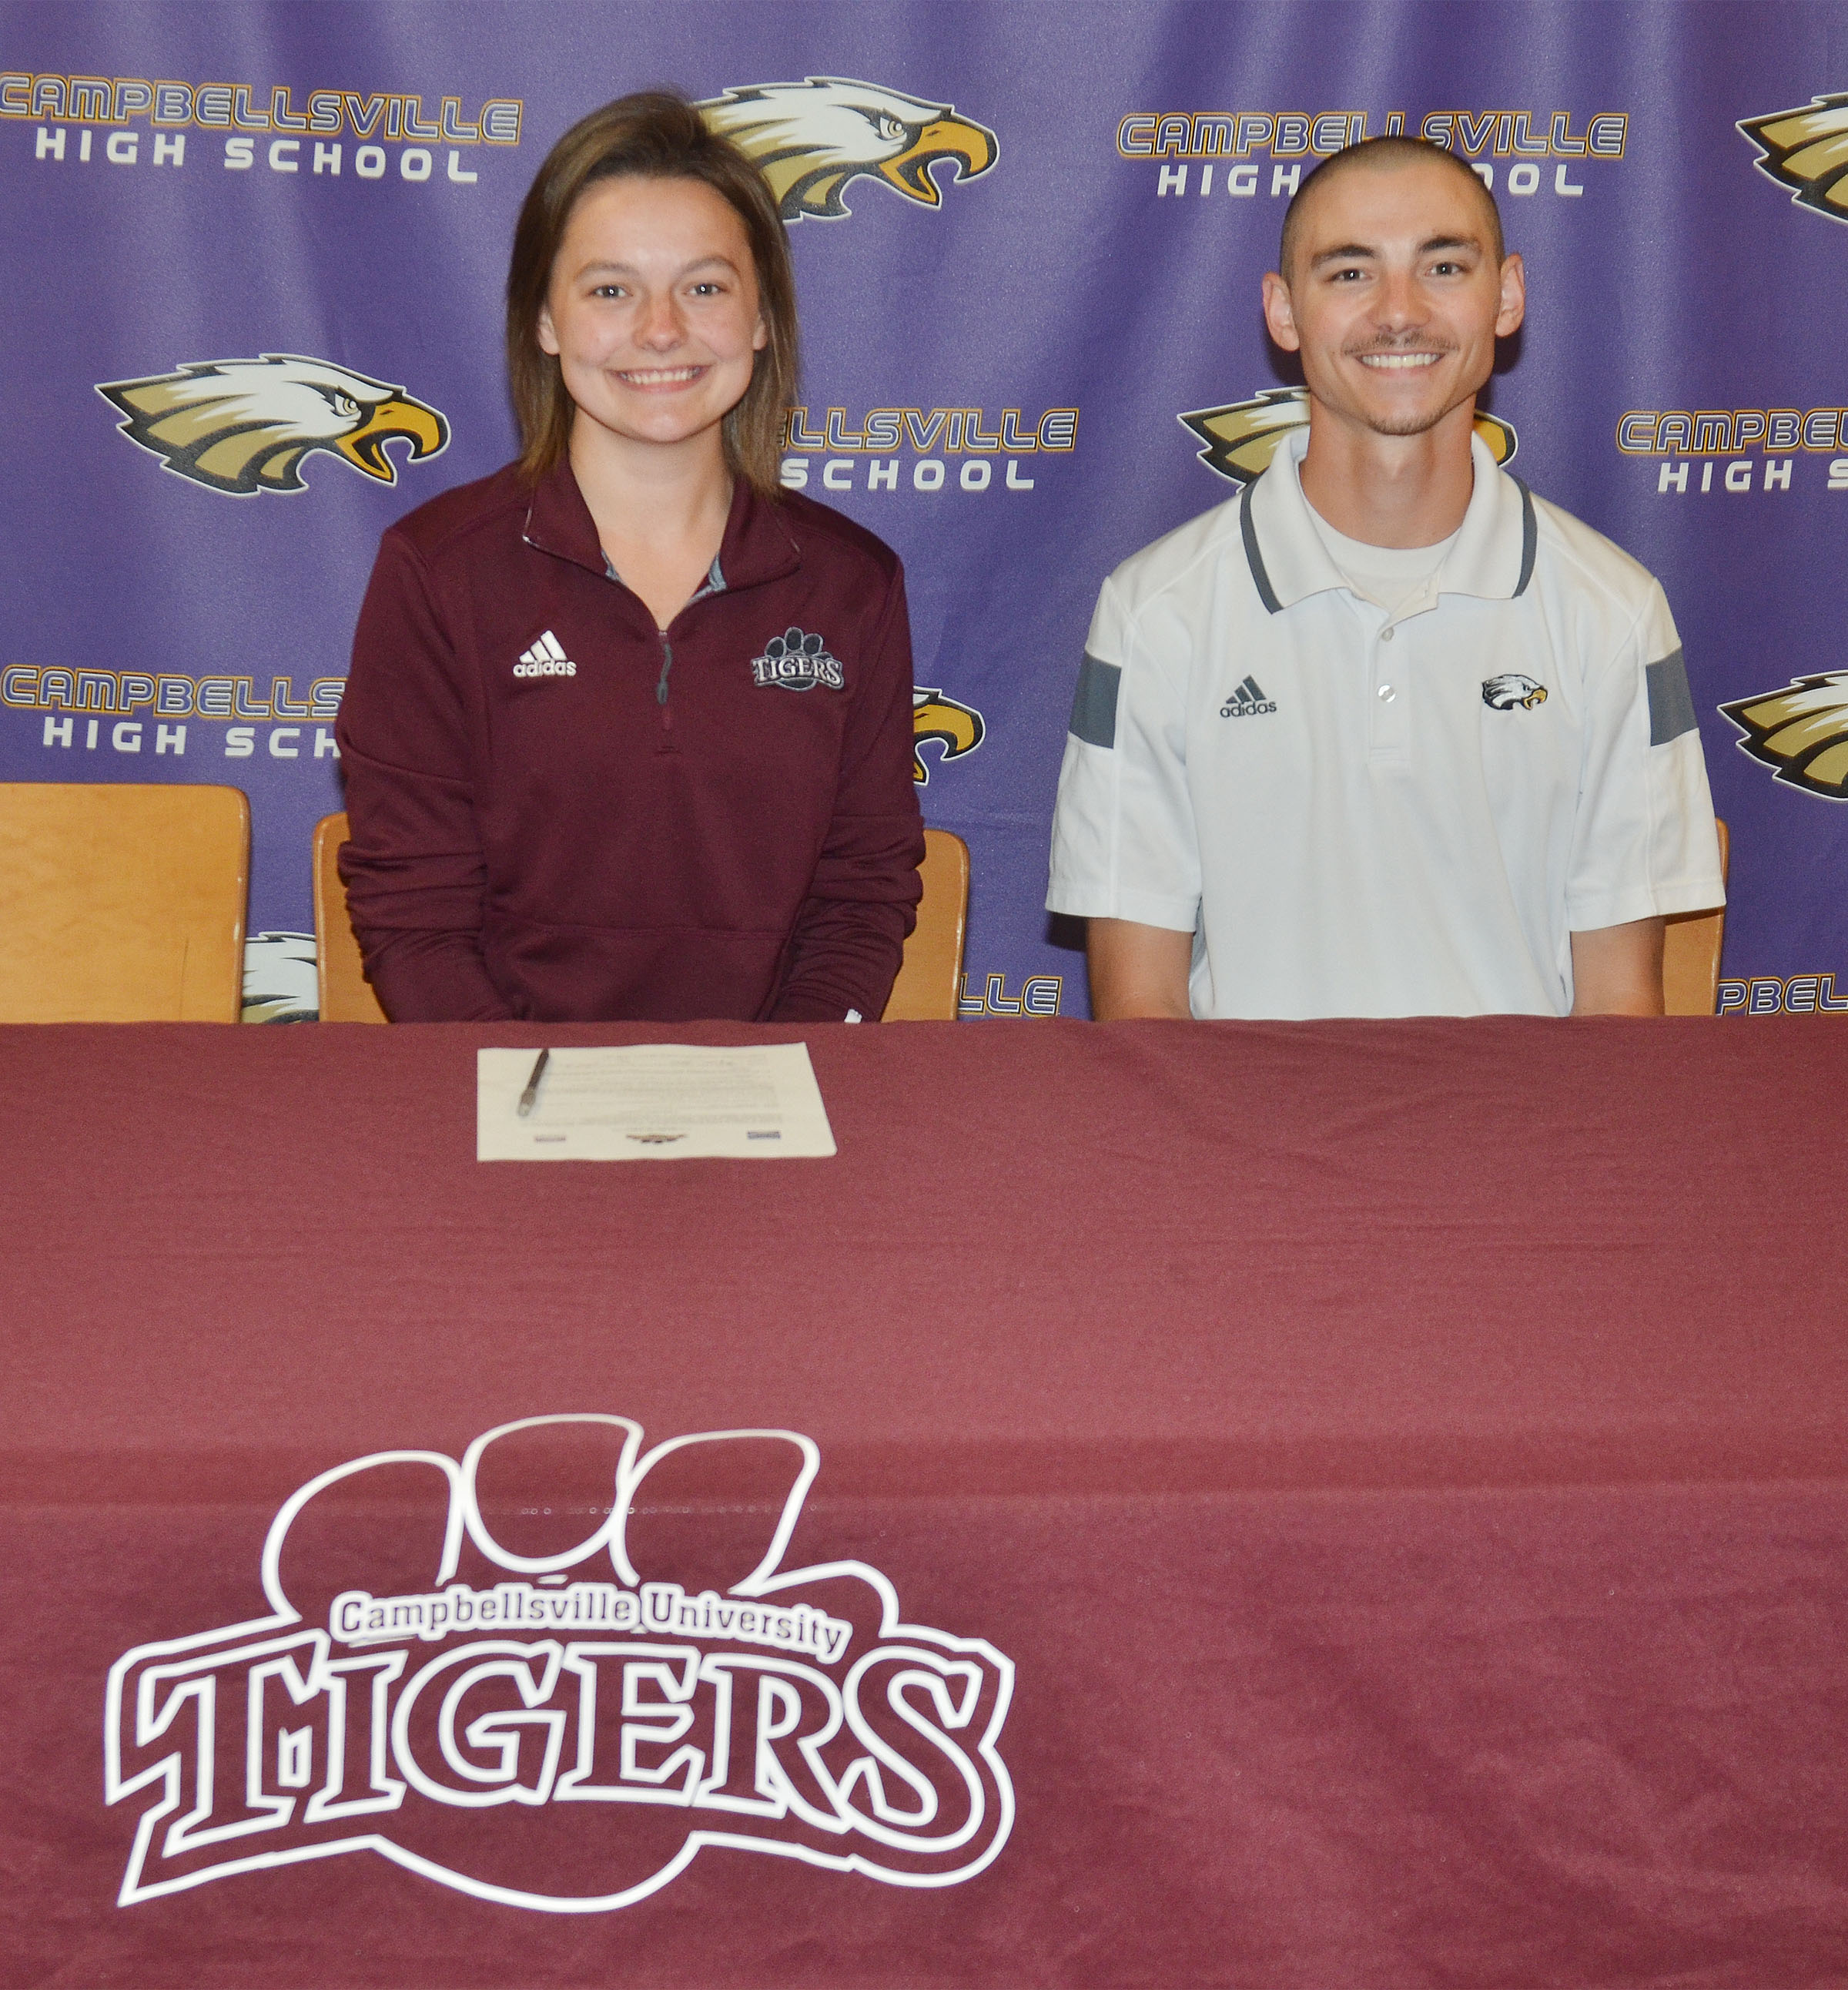 Campbellsville High School senior Kyrsten Hill will continue her academic and tennis career at Campbellsville University this fall. She recently signed her letter of intent in a special ceremony with her family, friends, teammates and coaches. Hill is pictured with CHS tennis coach Bradley Harris.